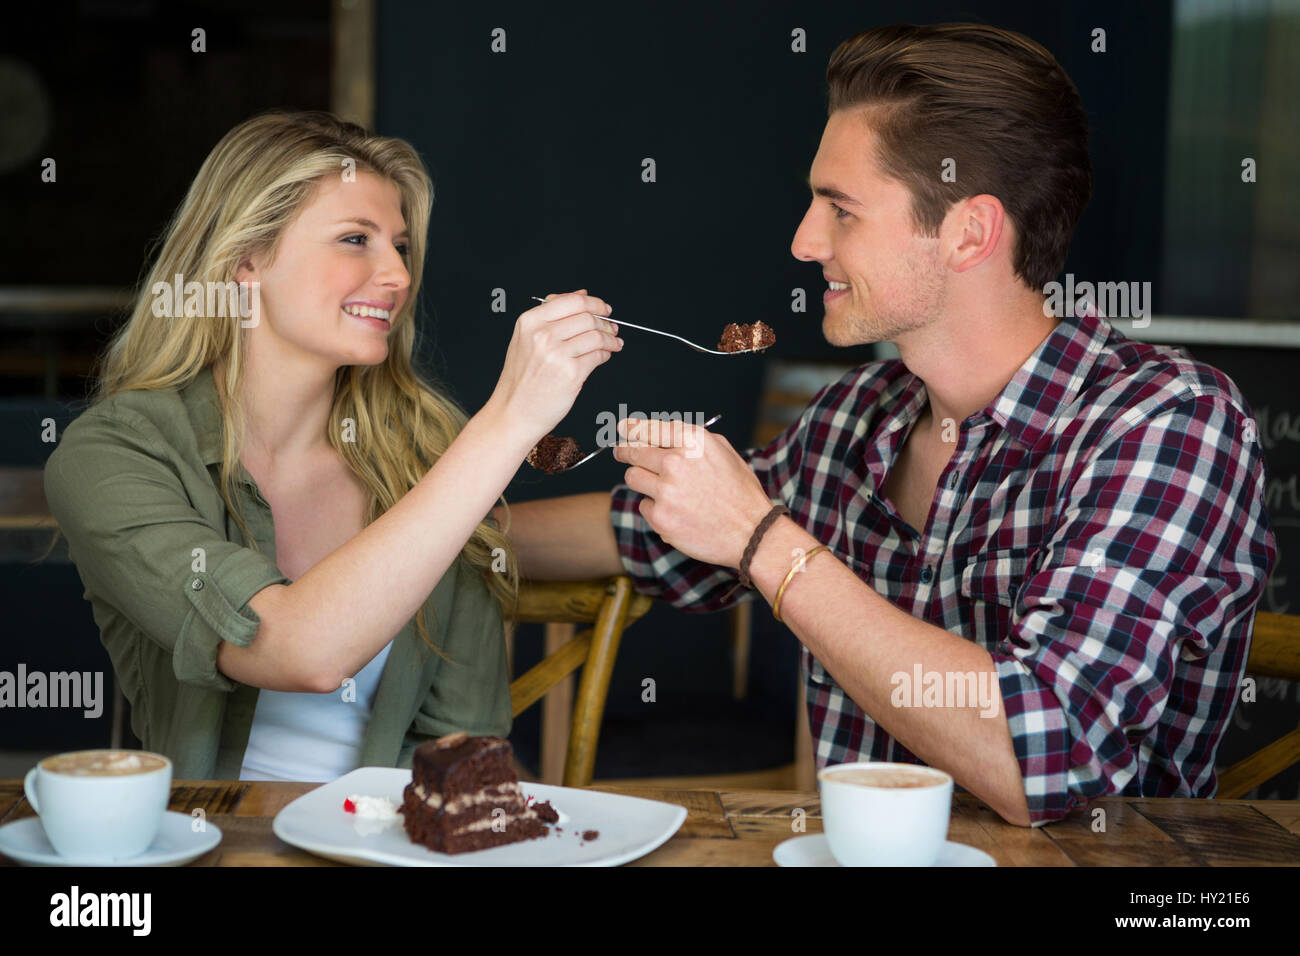 Smiling young couple feeding each other dessert in cafe - Stock Image